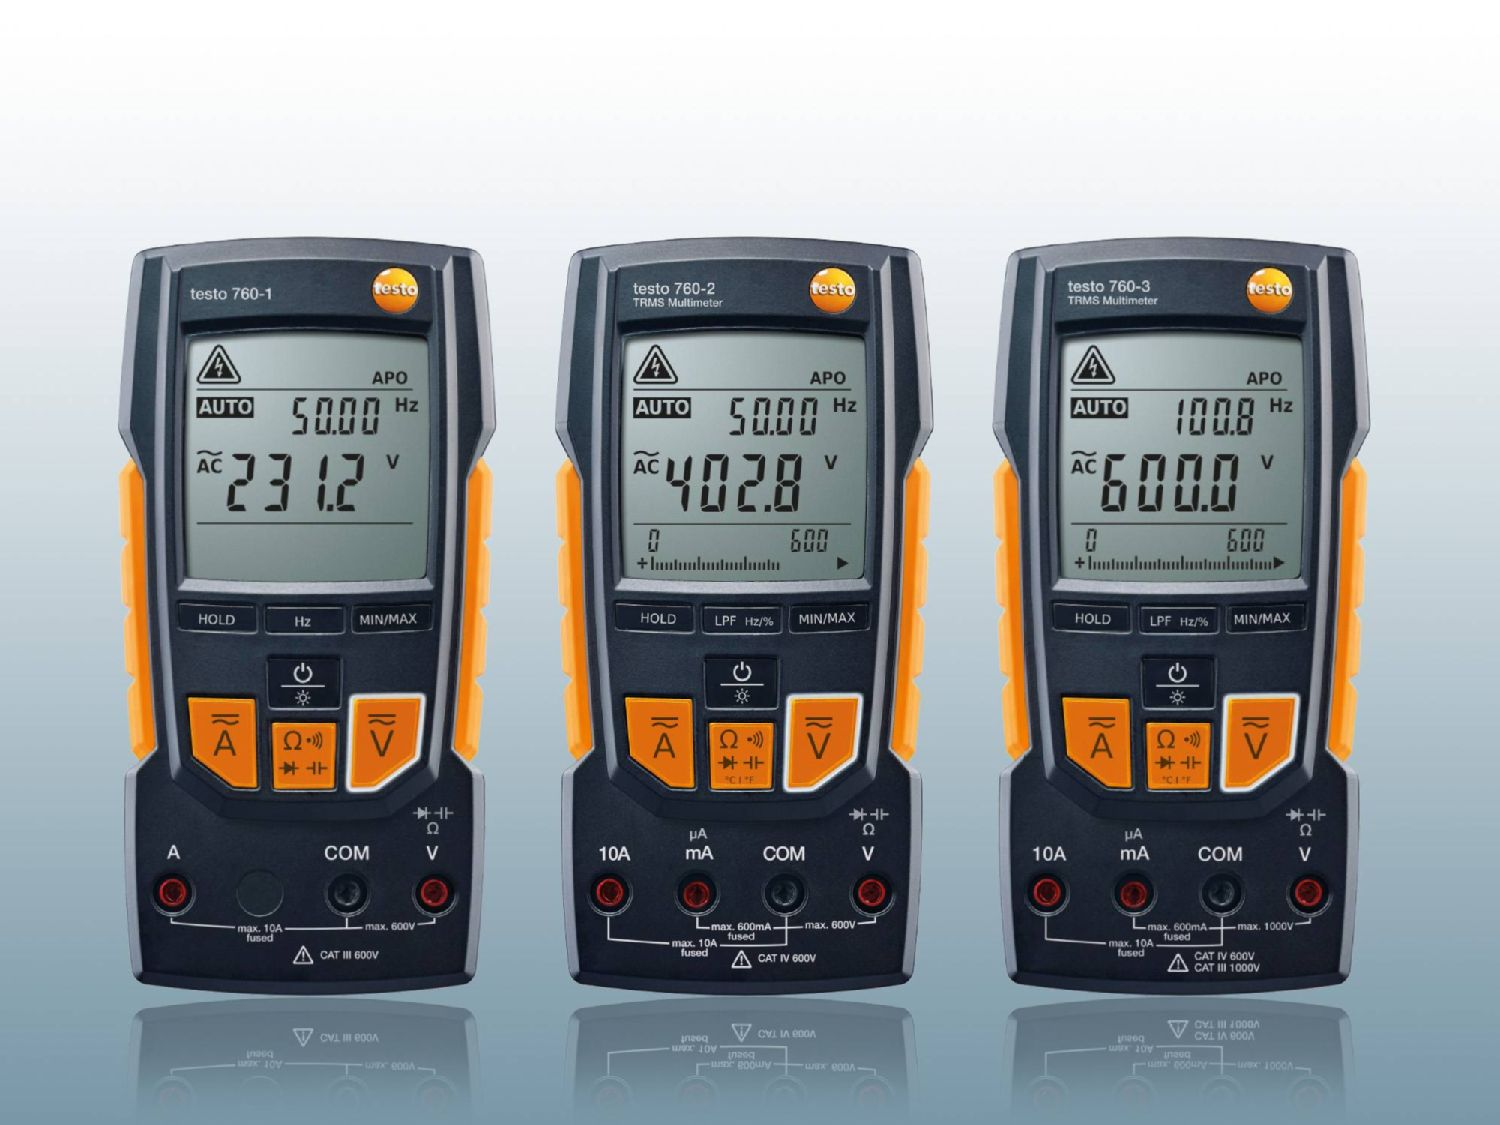 Digital multimeters from Testo